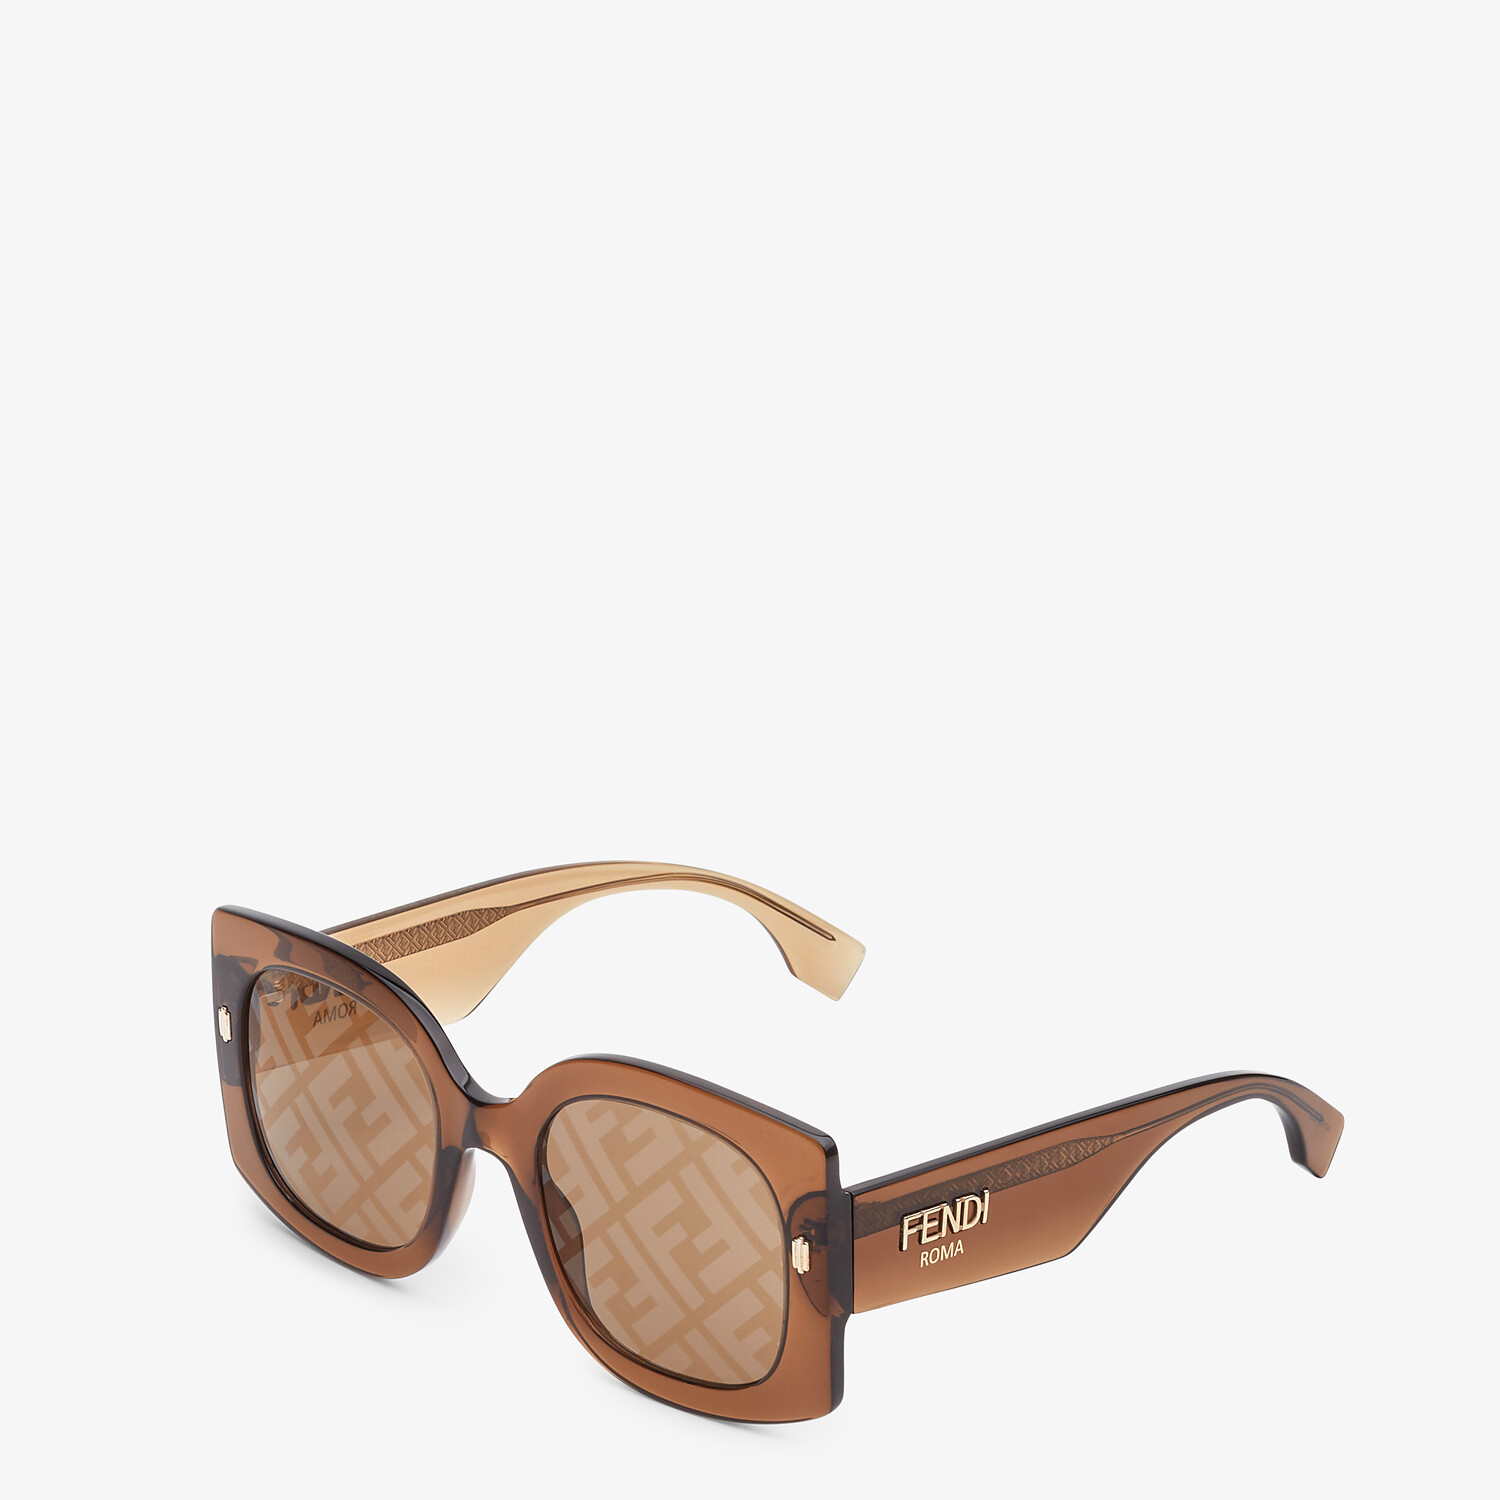 FENDI FENDI ROMA - Sunglasses in transparent brown acetate - view 2 detail